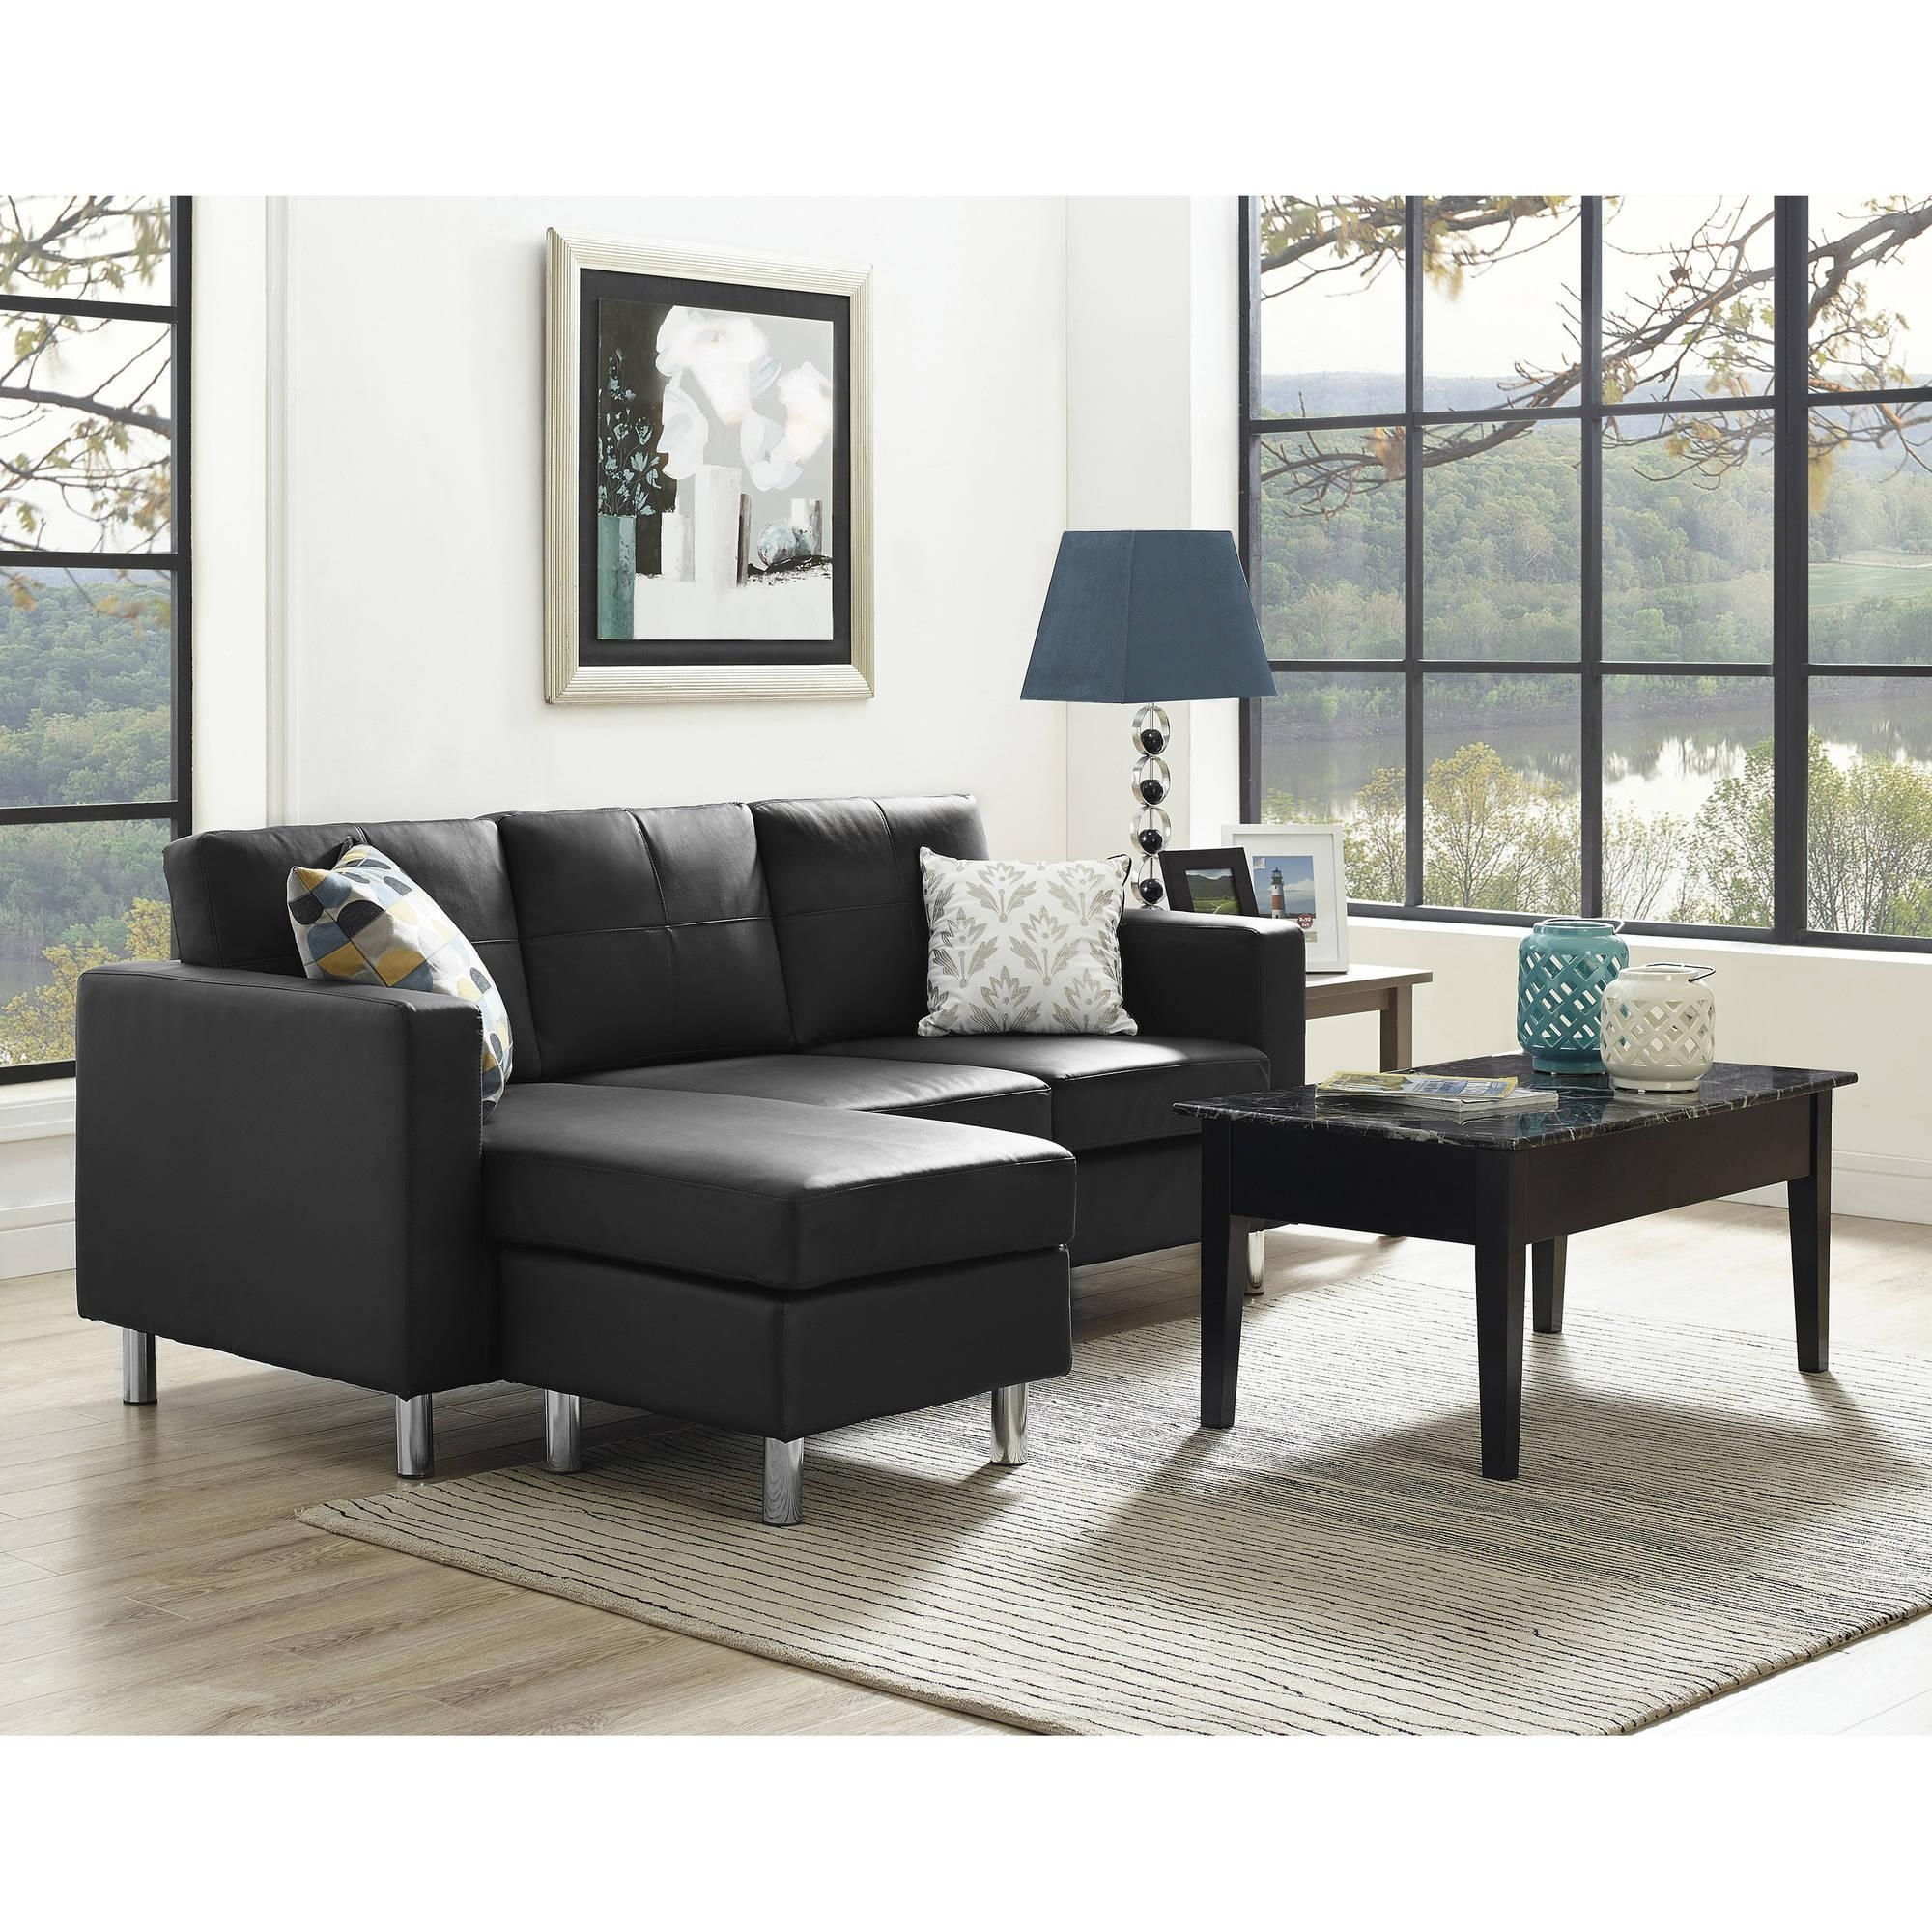 Dorel Living Small Spaces Configurable Sectional Sofa, Multiple With Mini Sectional Sofas (Image 6 of 20)